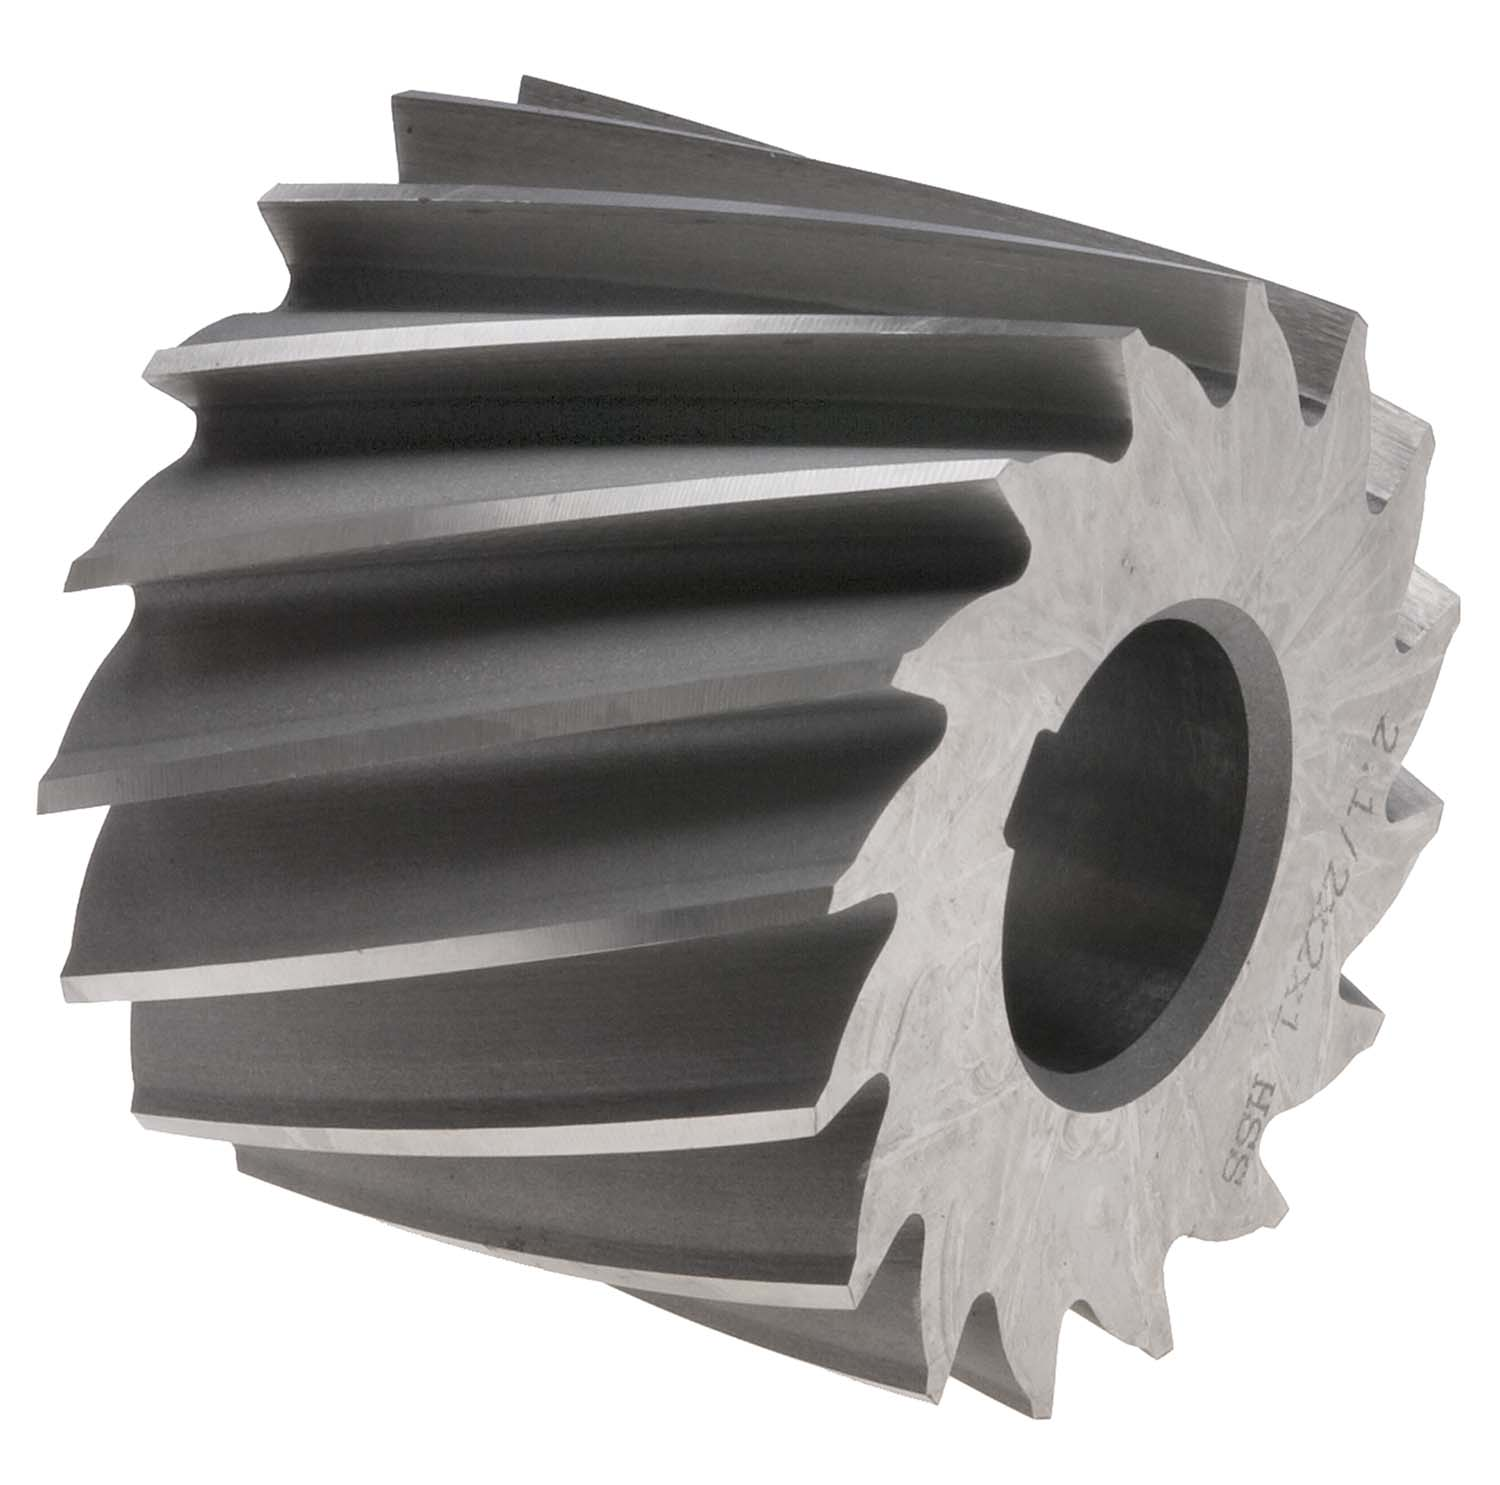 4 X 4 X 1-1/4 Plain Milling Cutter, High Speed Steel